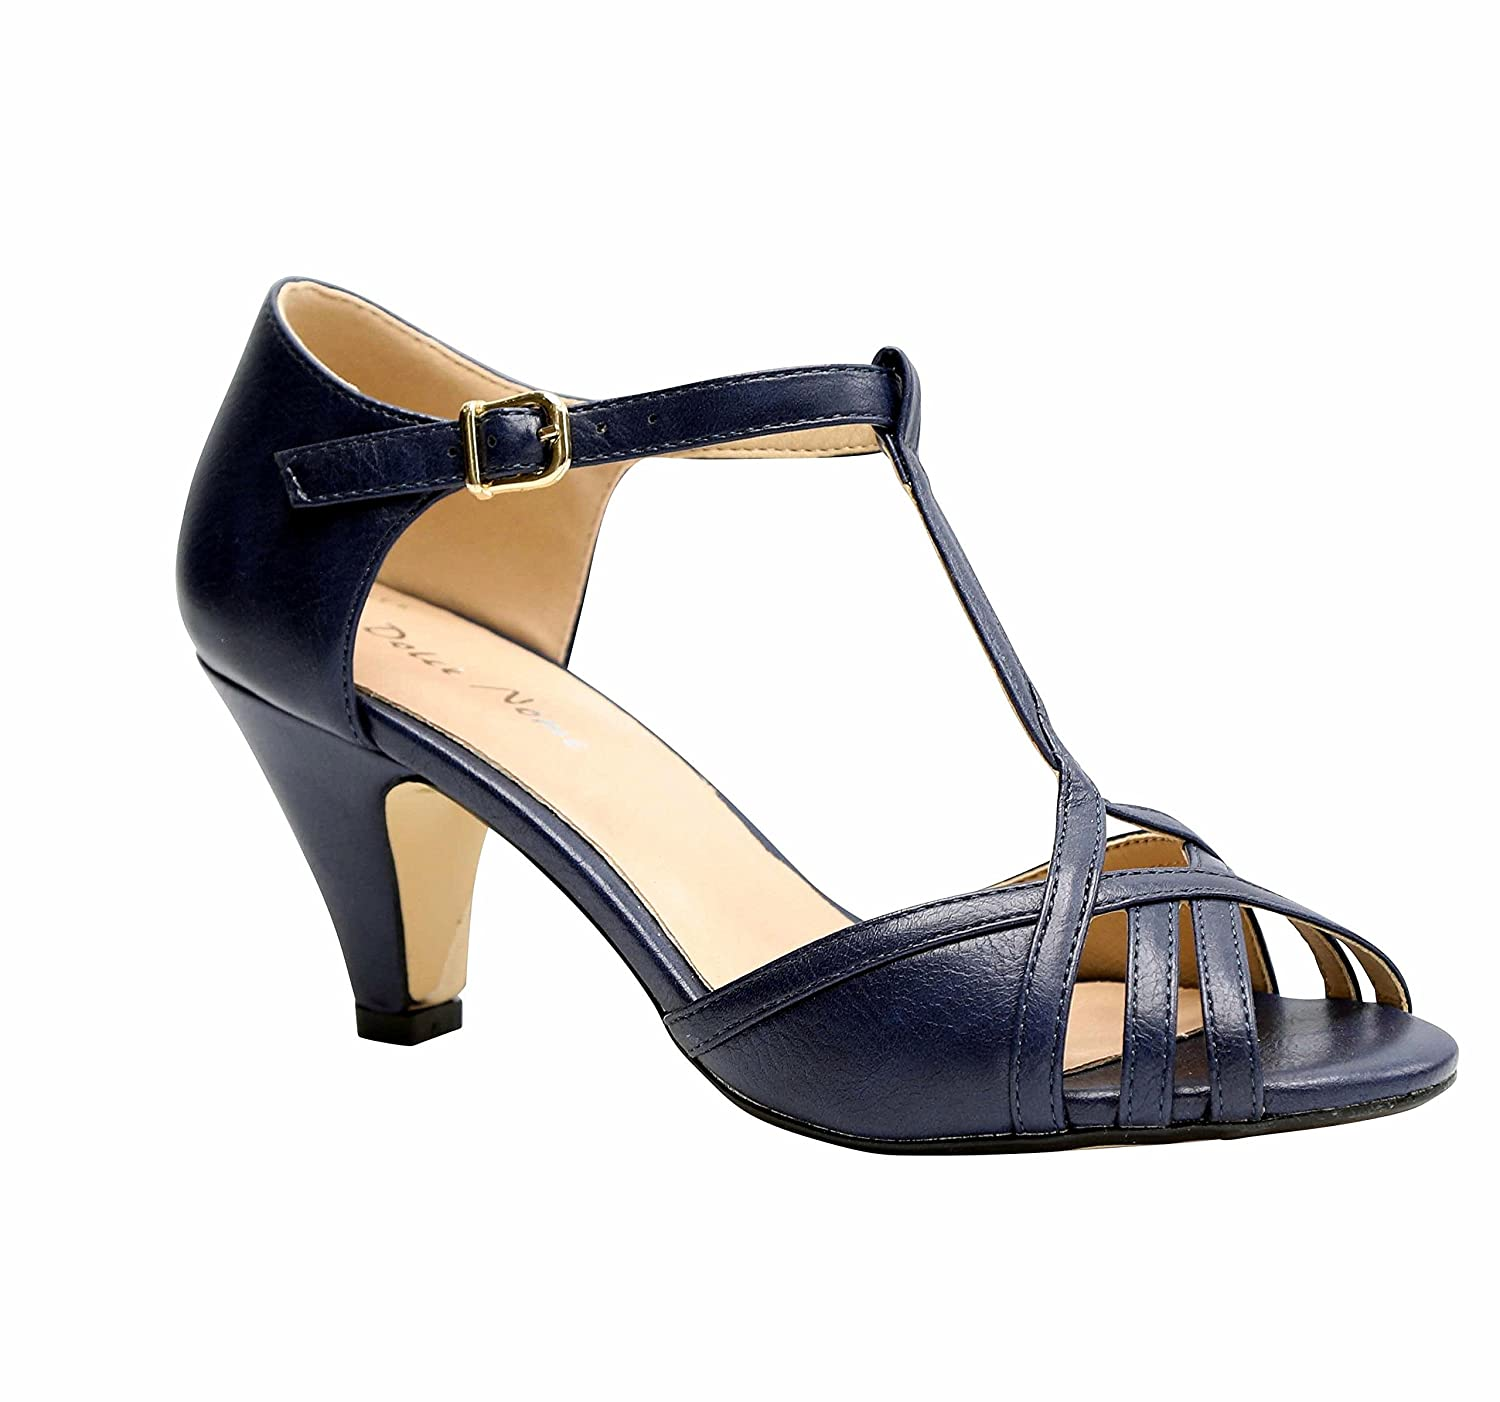 Dolce Nome Open Toe Heels Women's Designer Shoes Italian Style Well Constructed Ladies Fancy Shoes B07BXZG3C1 4 B(M) US|Navy